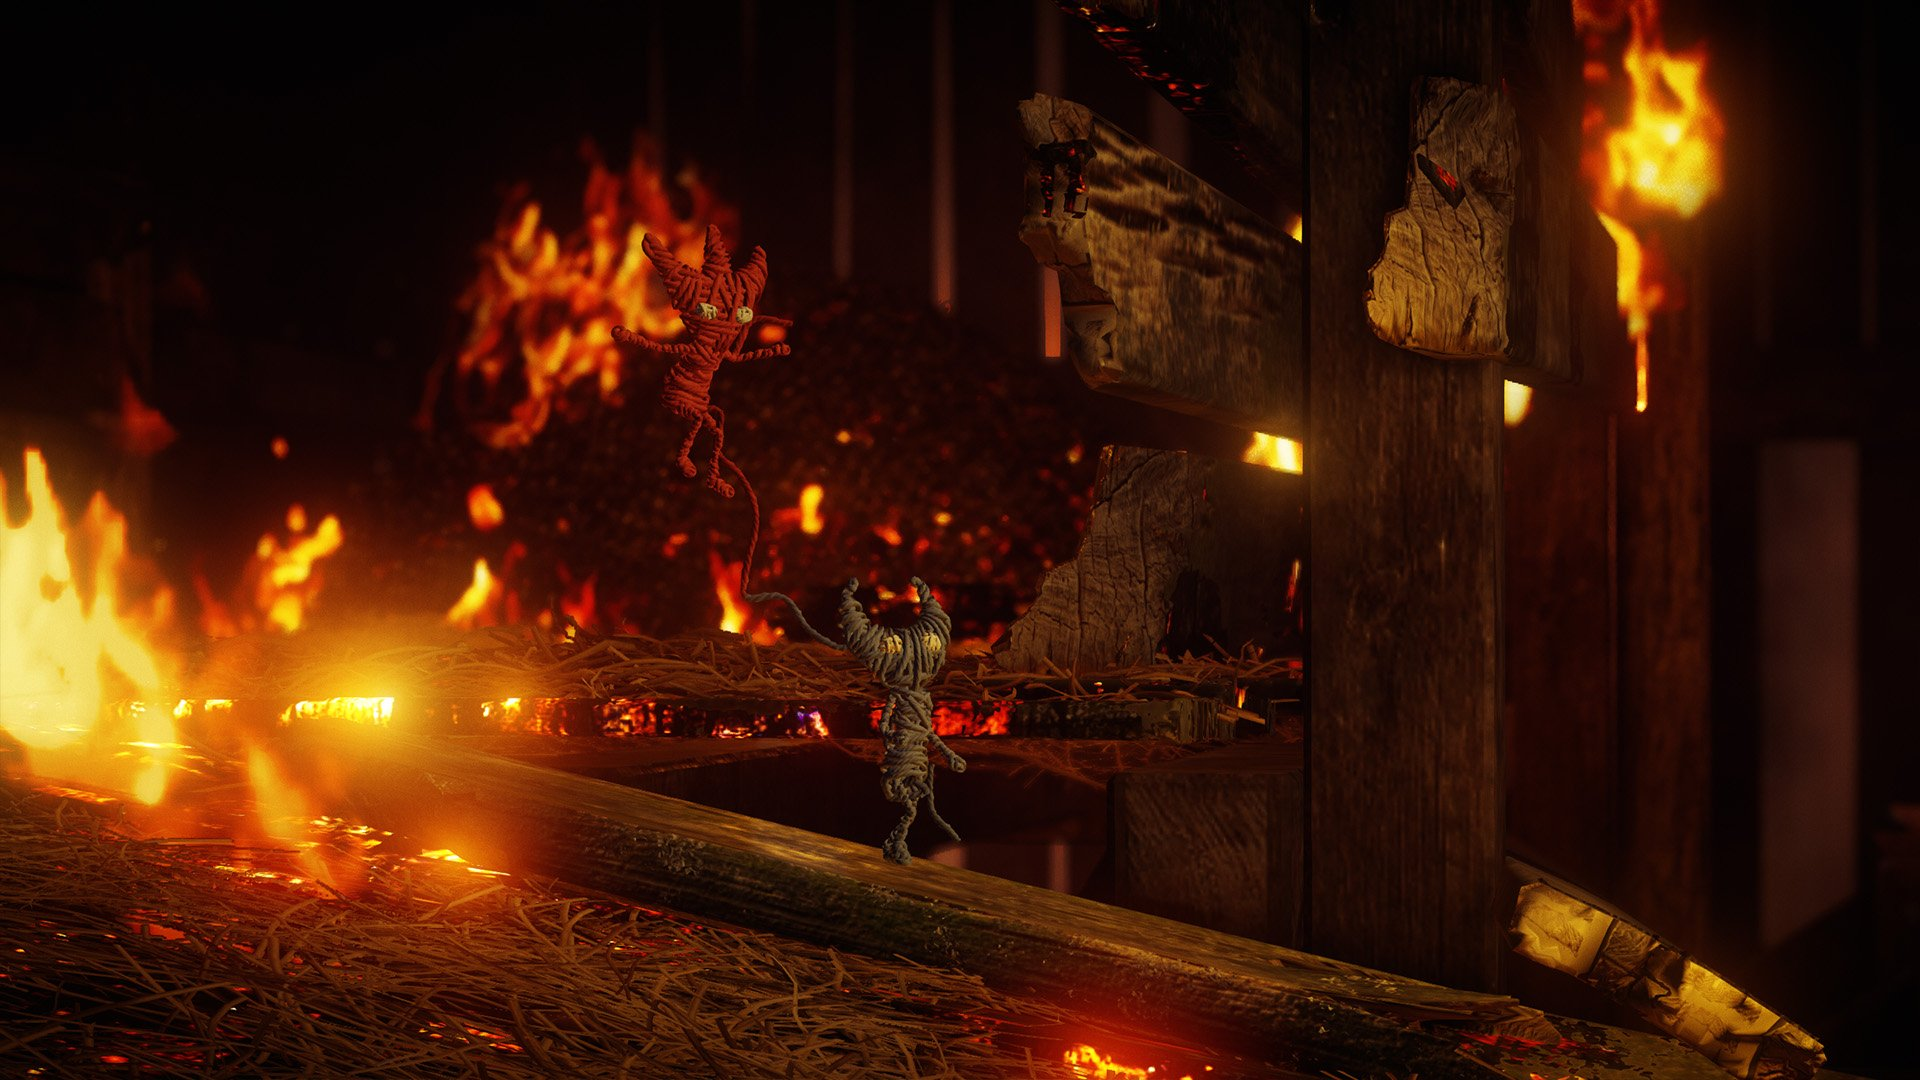 Unravel Two Review - Yarning To Be More (PS4)